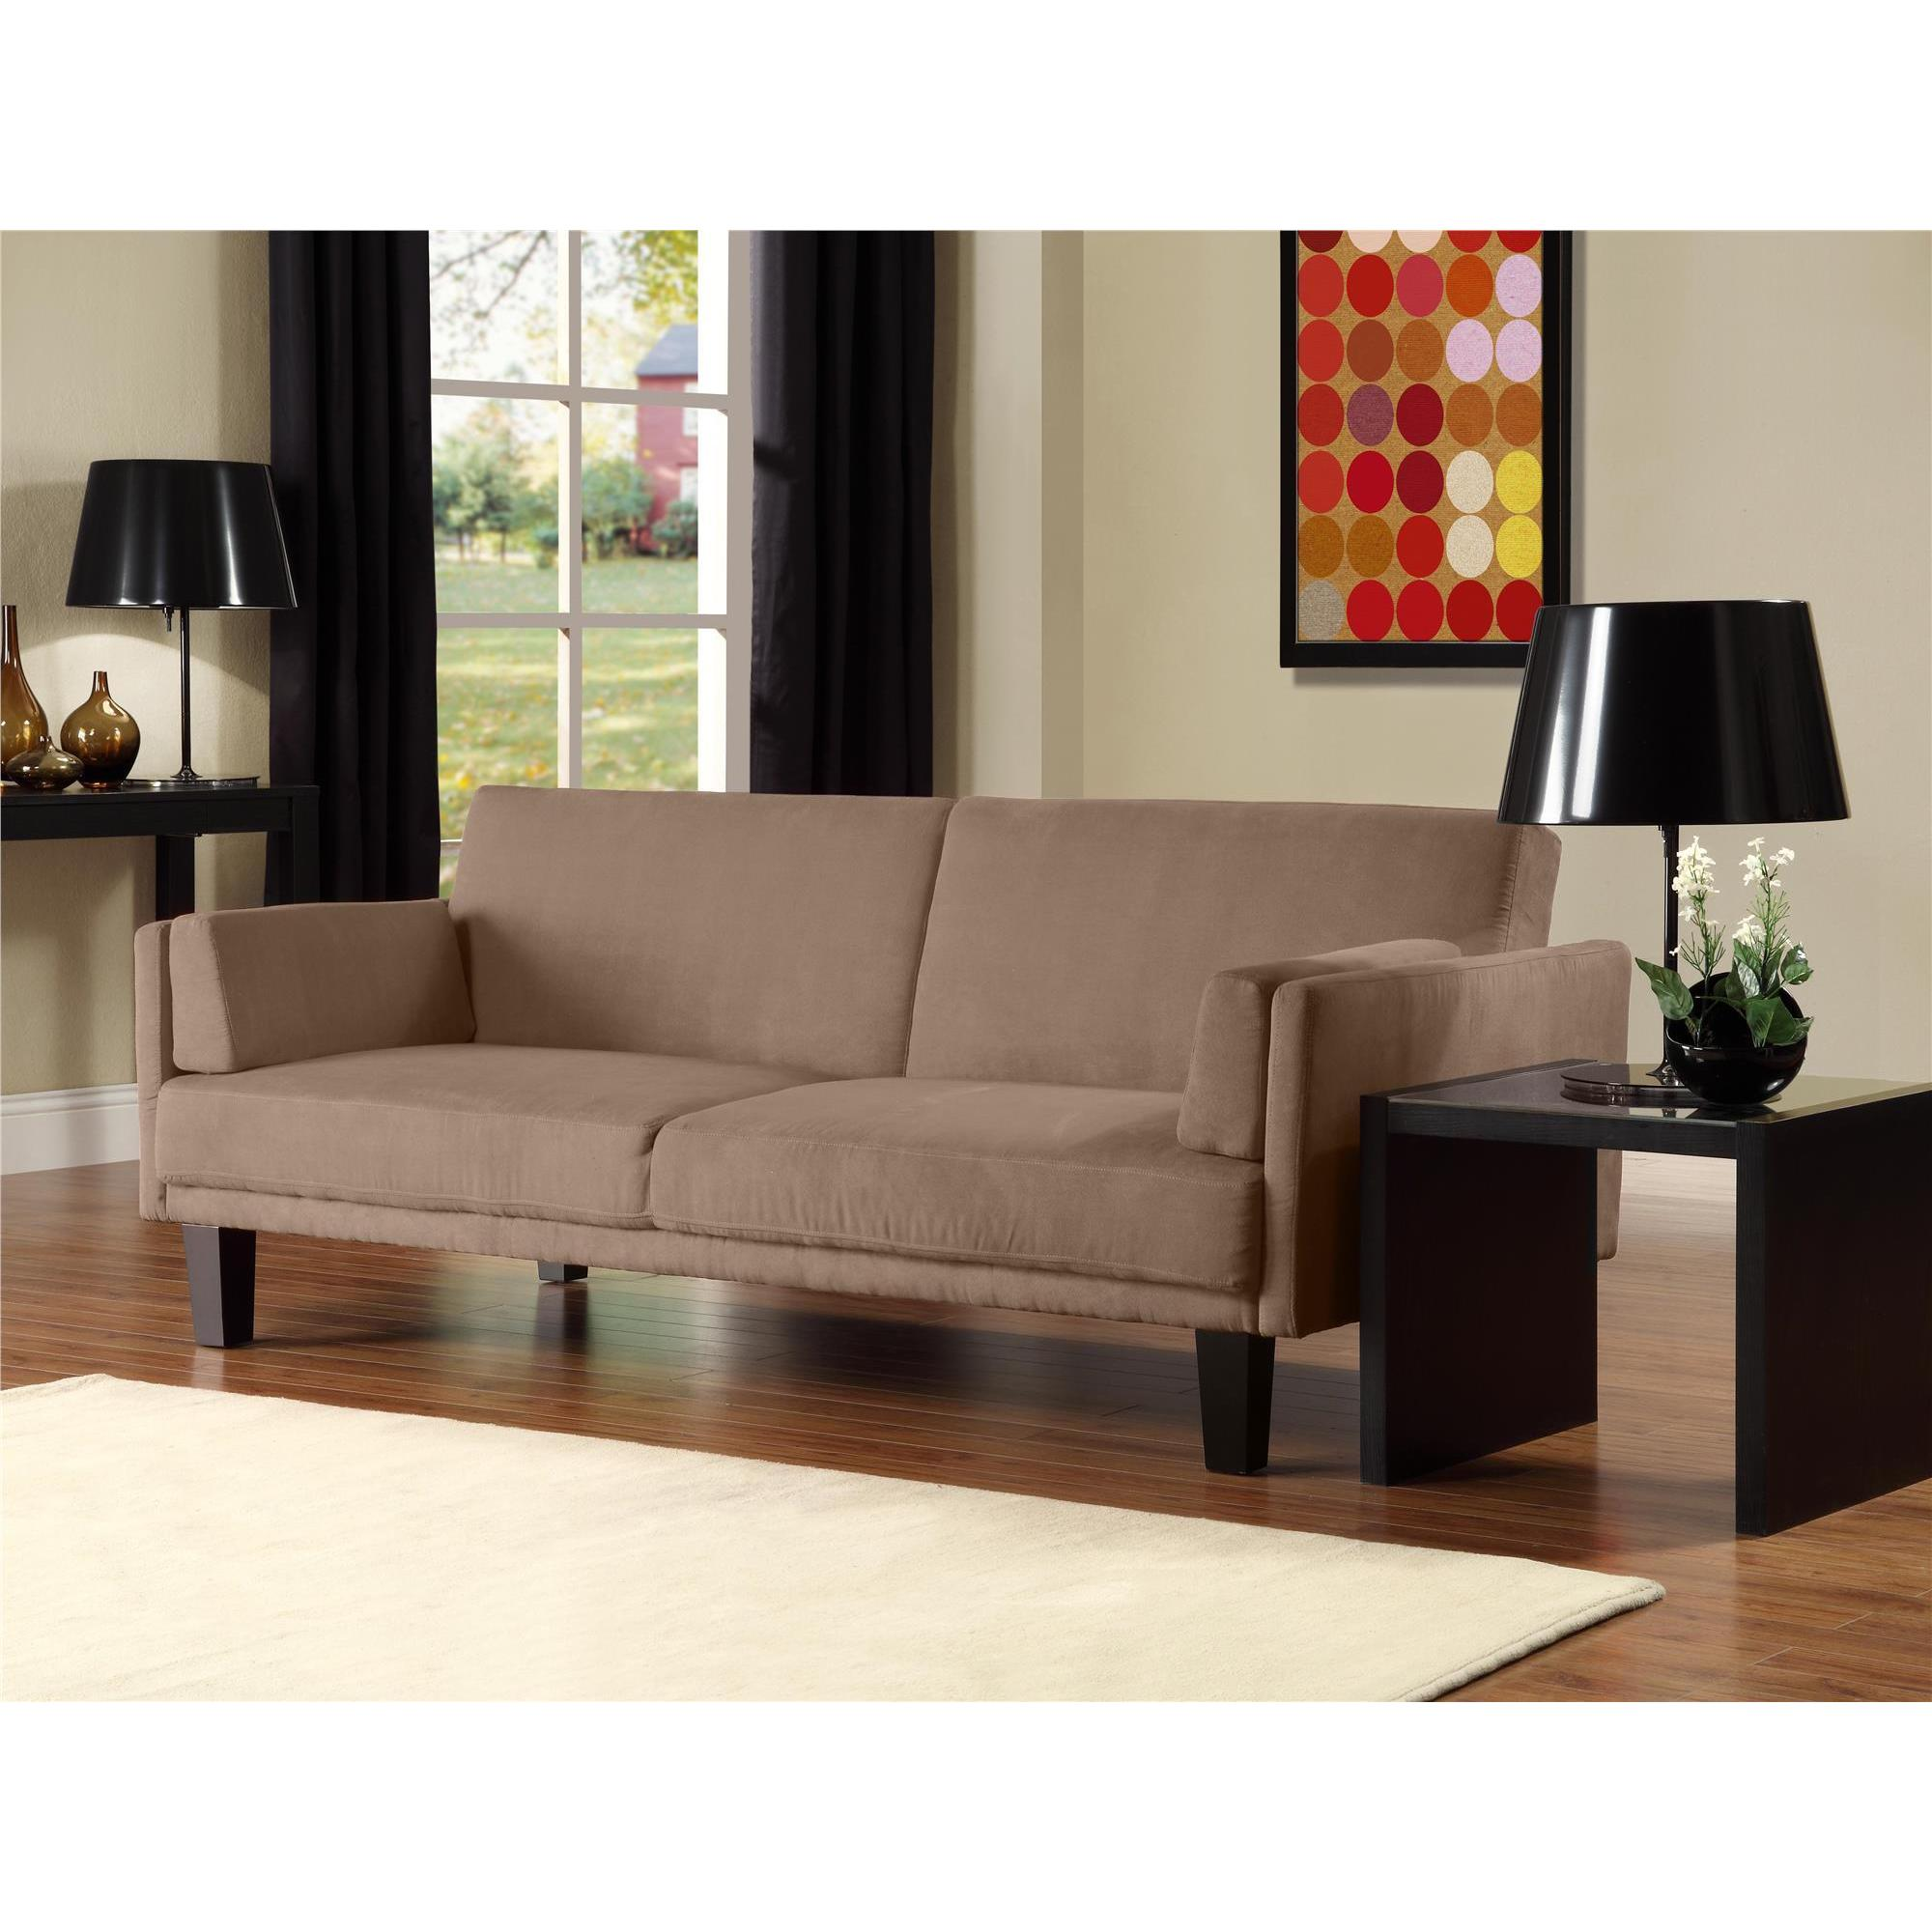 Shop Dhp Metro Futon Sofa Bed Free Shipping Today Overstock Com